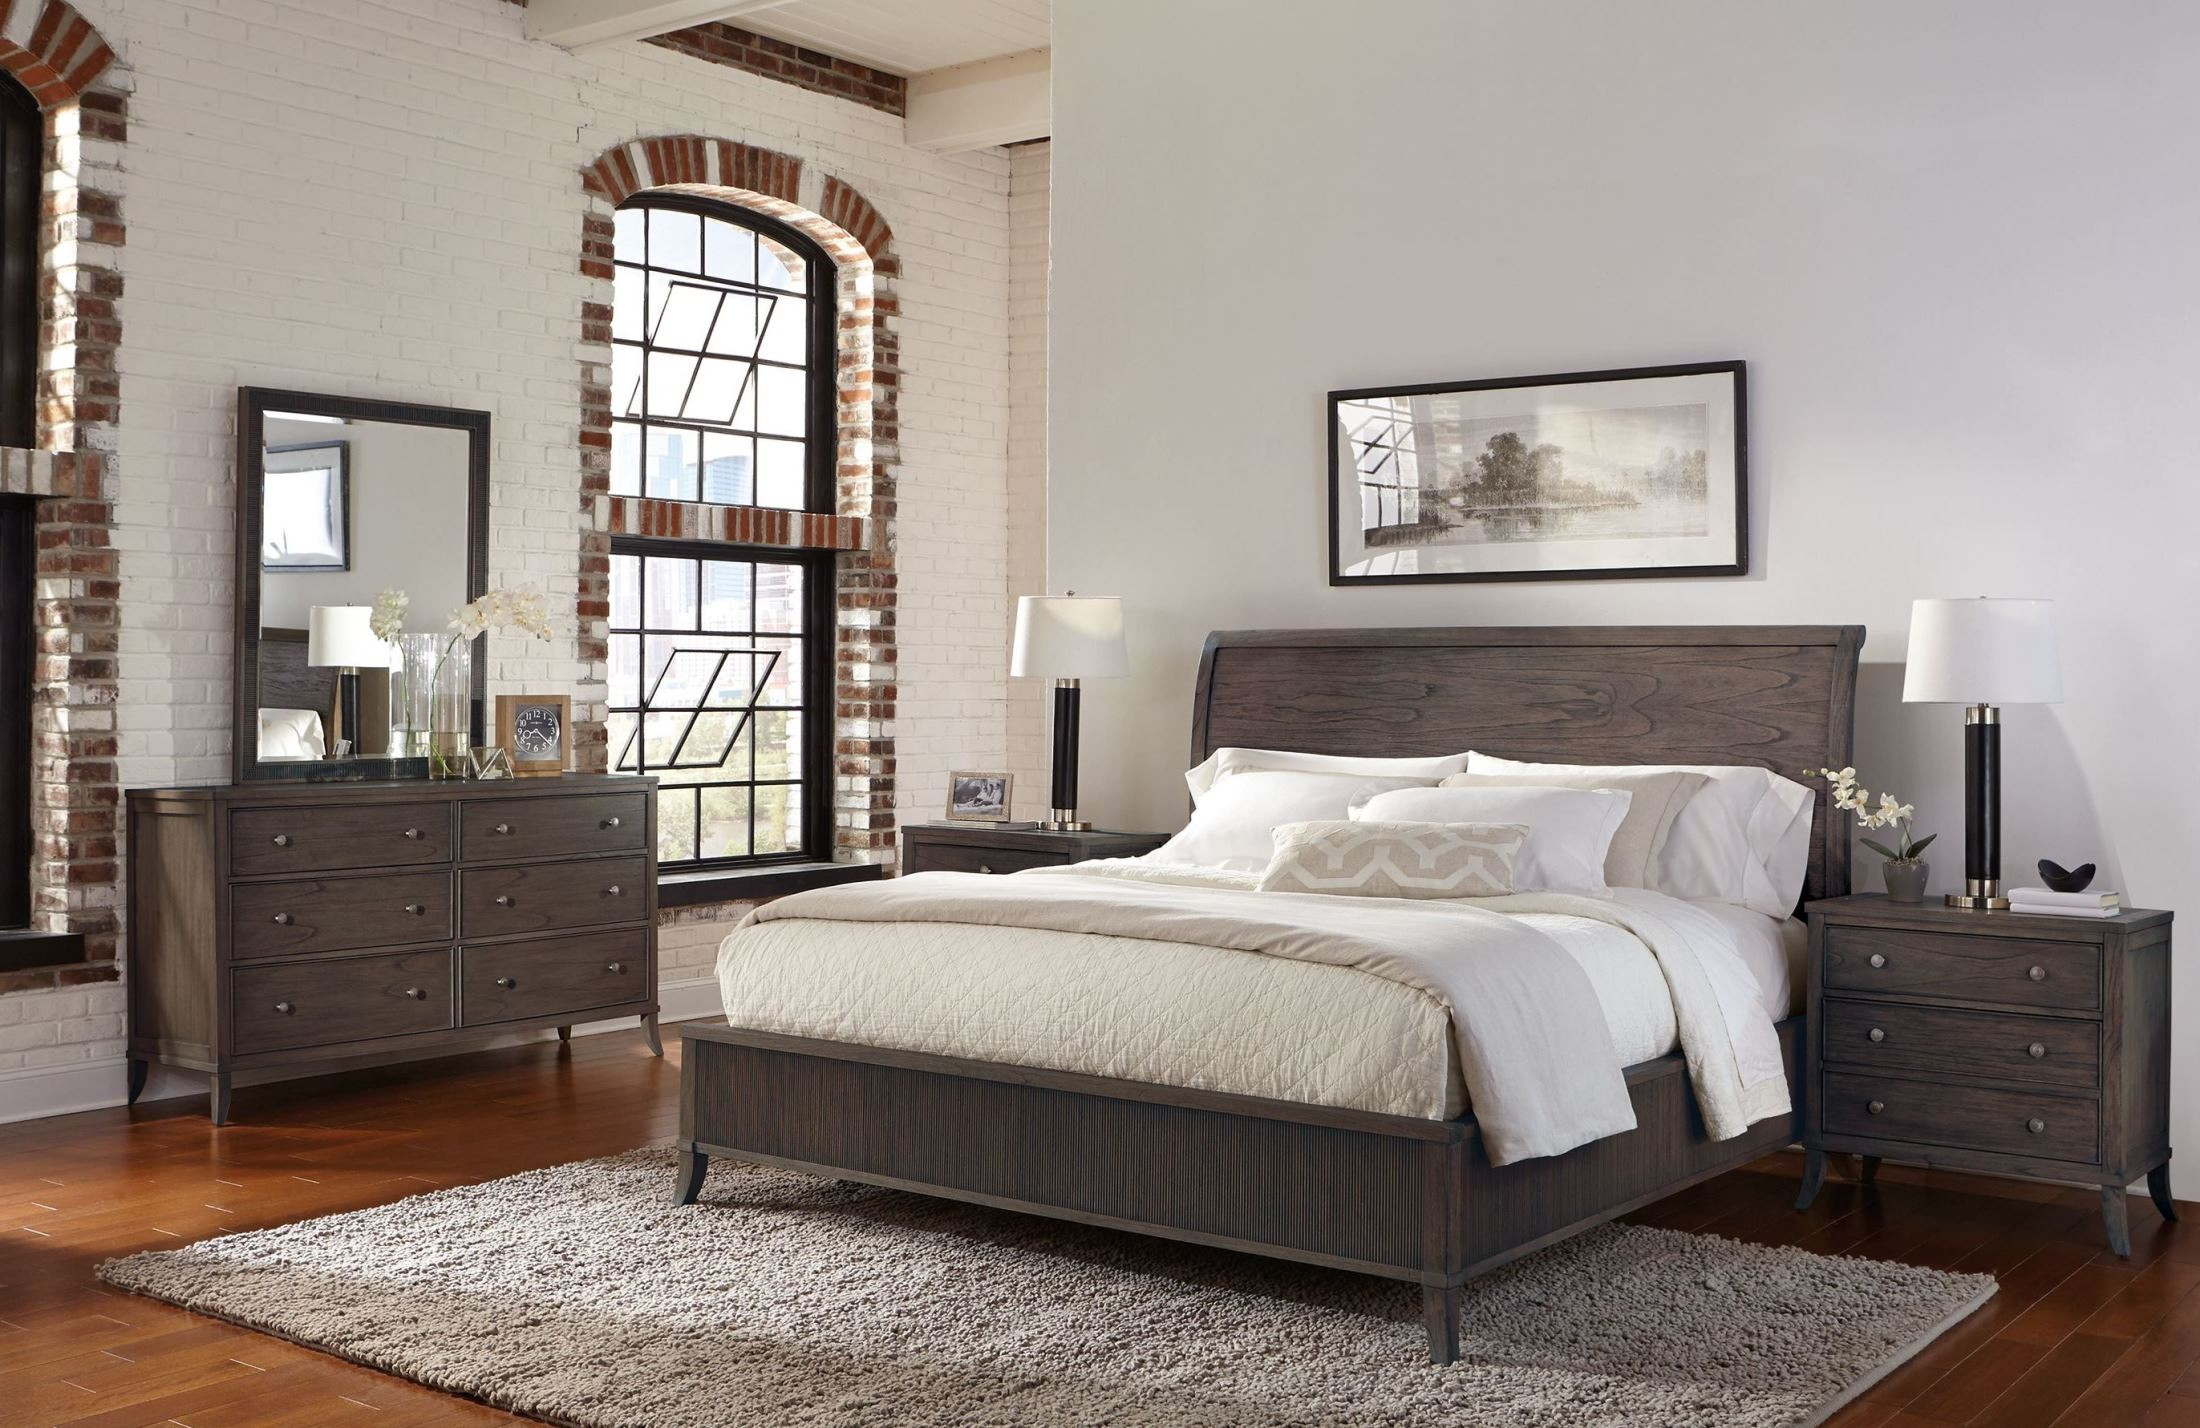 Urban Retreat Sumatra Wood Sleigh Bedroom Set From Hekman Furniture Coleman Furniture